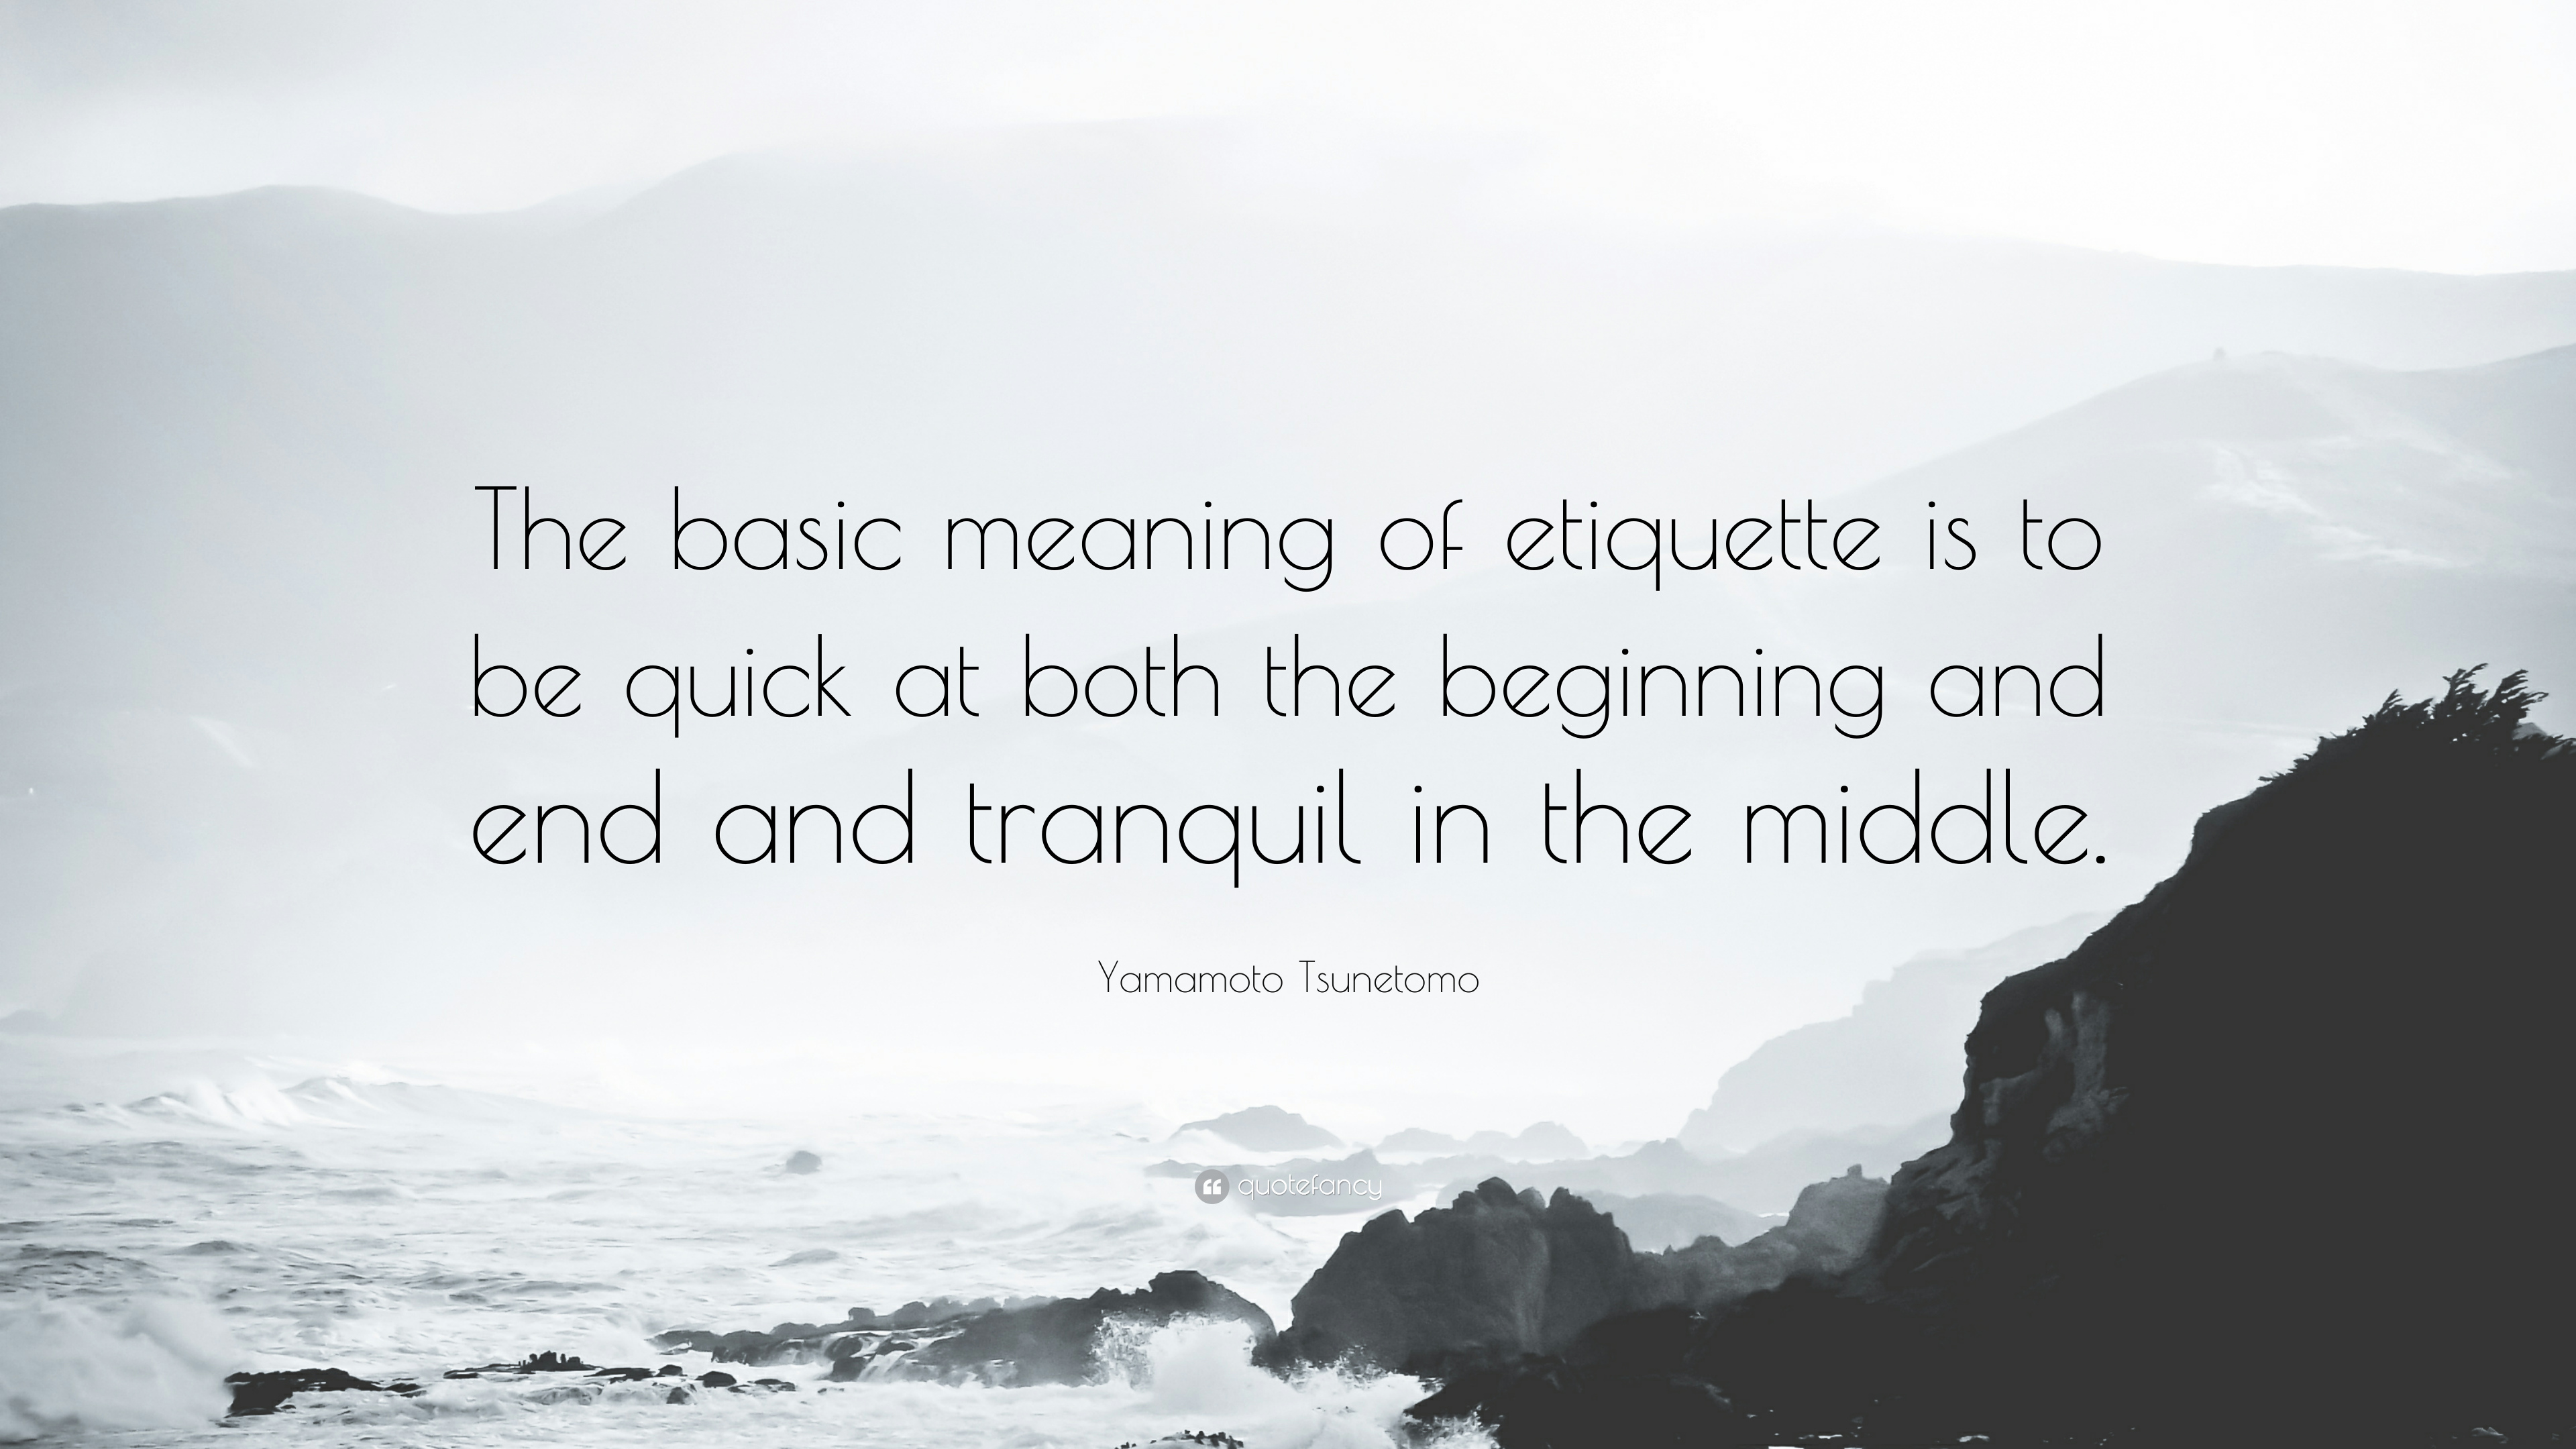 Yamamoto Tsunetomo Quote u201cThe basic meaning of etiquette is to be quick at both & Yamamoto Tsunetomo Quote: u201cThe basic meaning of etiquette is to be ...